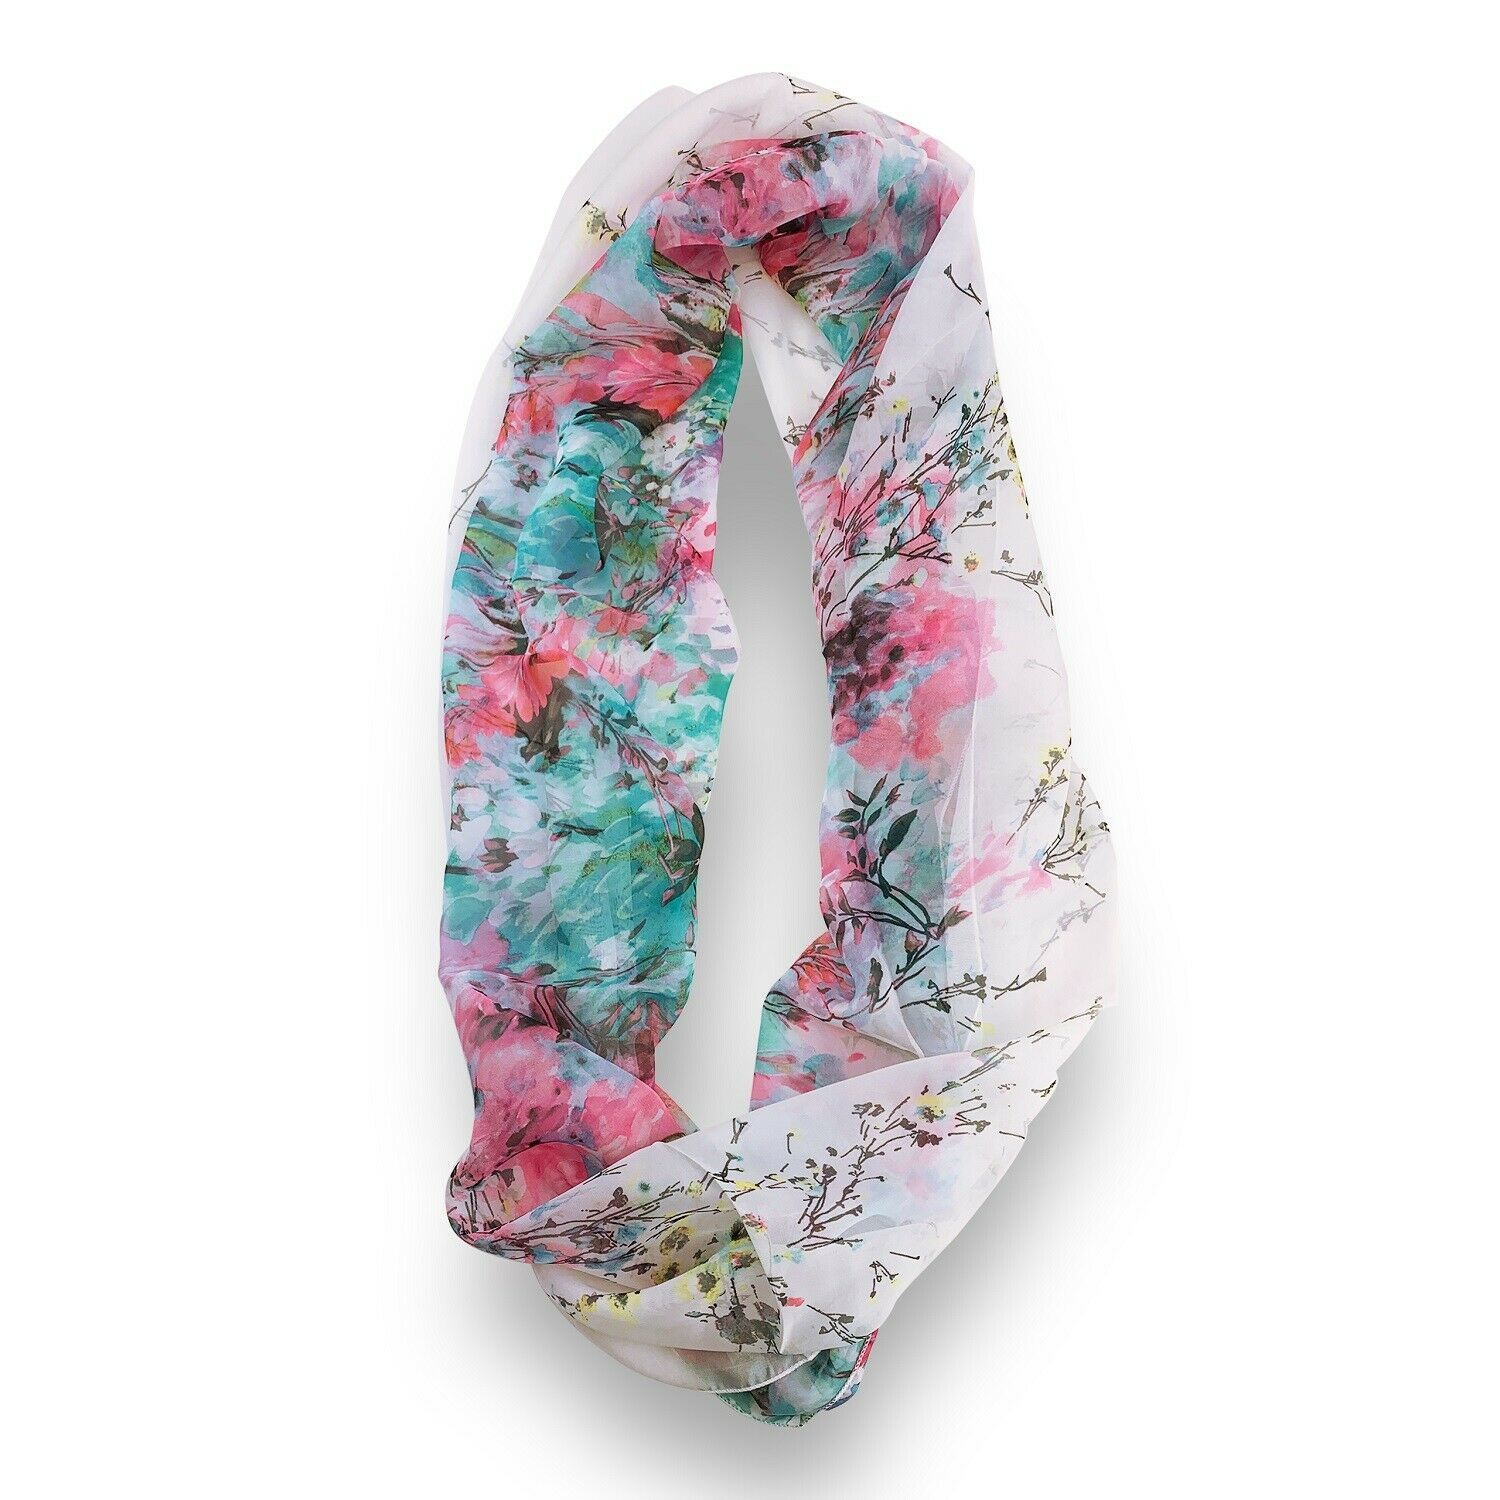 Primary image for Pink Turquoise Floral Sheer Infinity Scarf Loop Sheer Wrap Scarves Womens Shawl